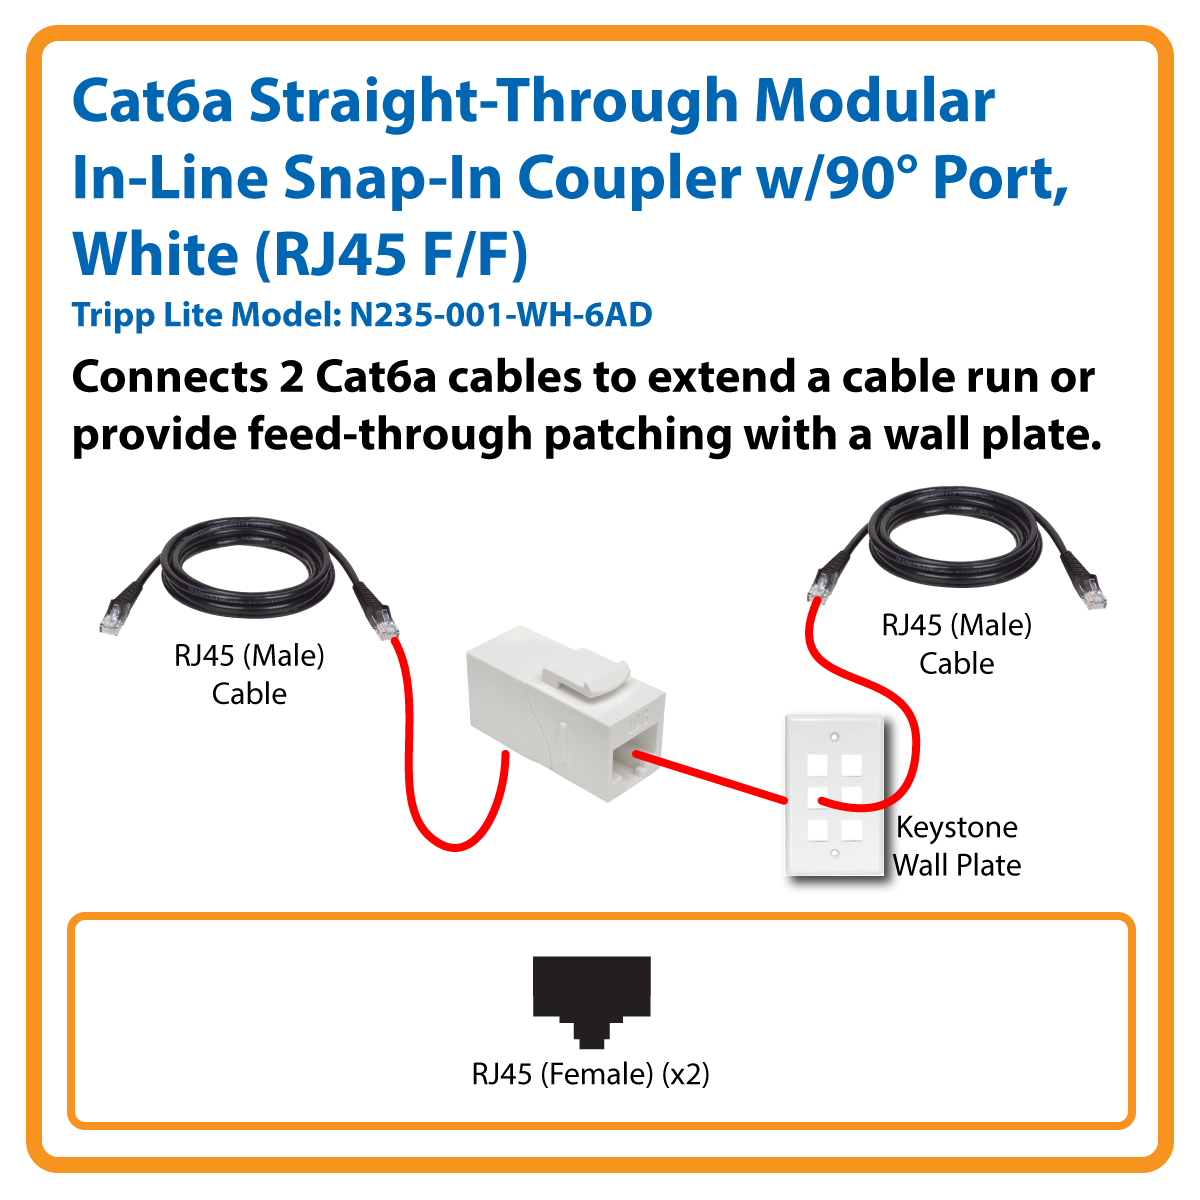 Tripp Lite Cat6a Straight Through Modular In Line Snap Coupler W Rj45 Wiring Diagram White With 90 Angled Port Connects Cables